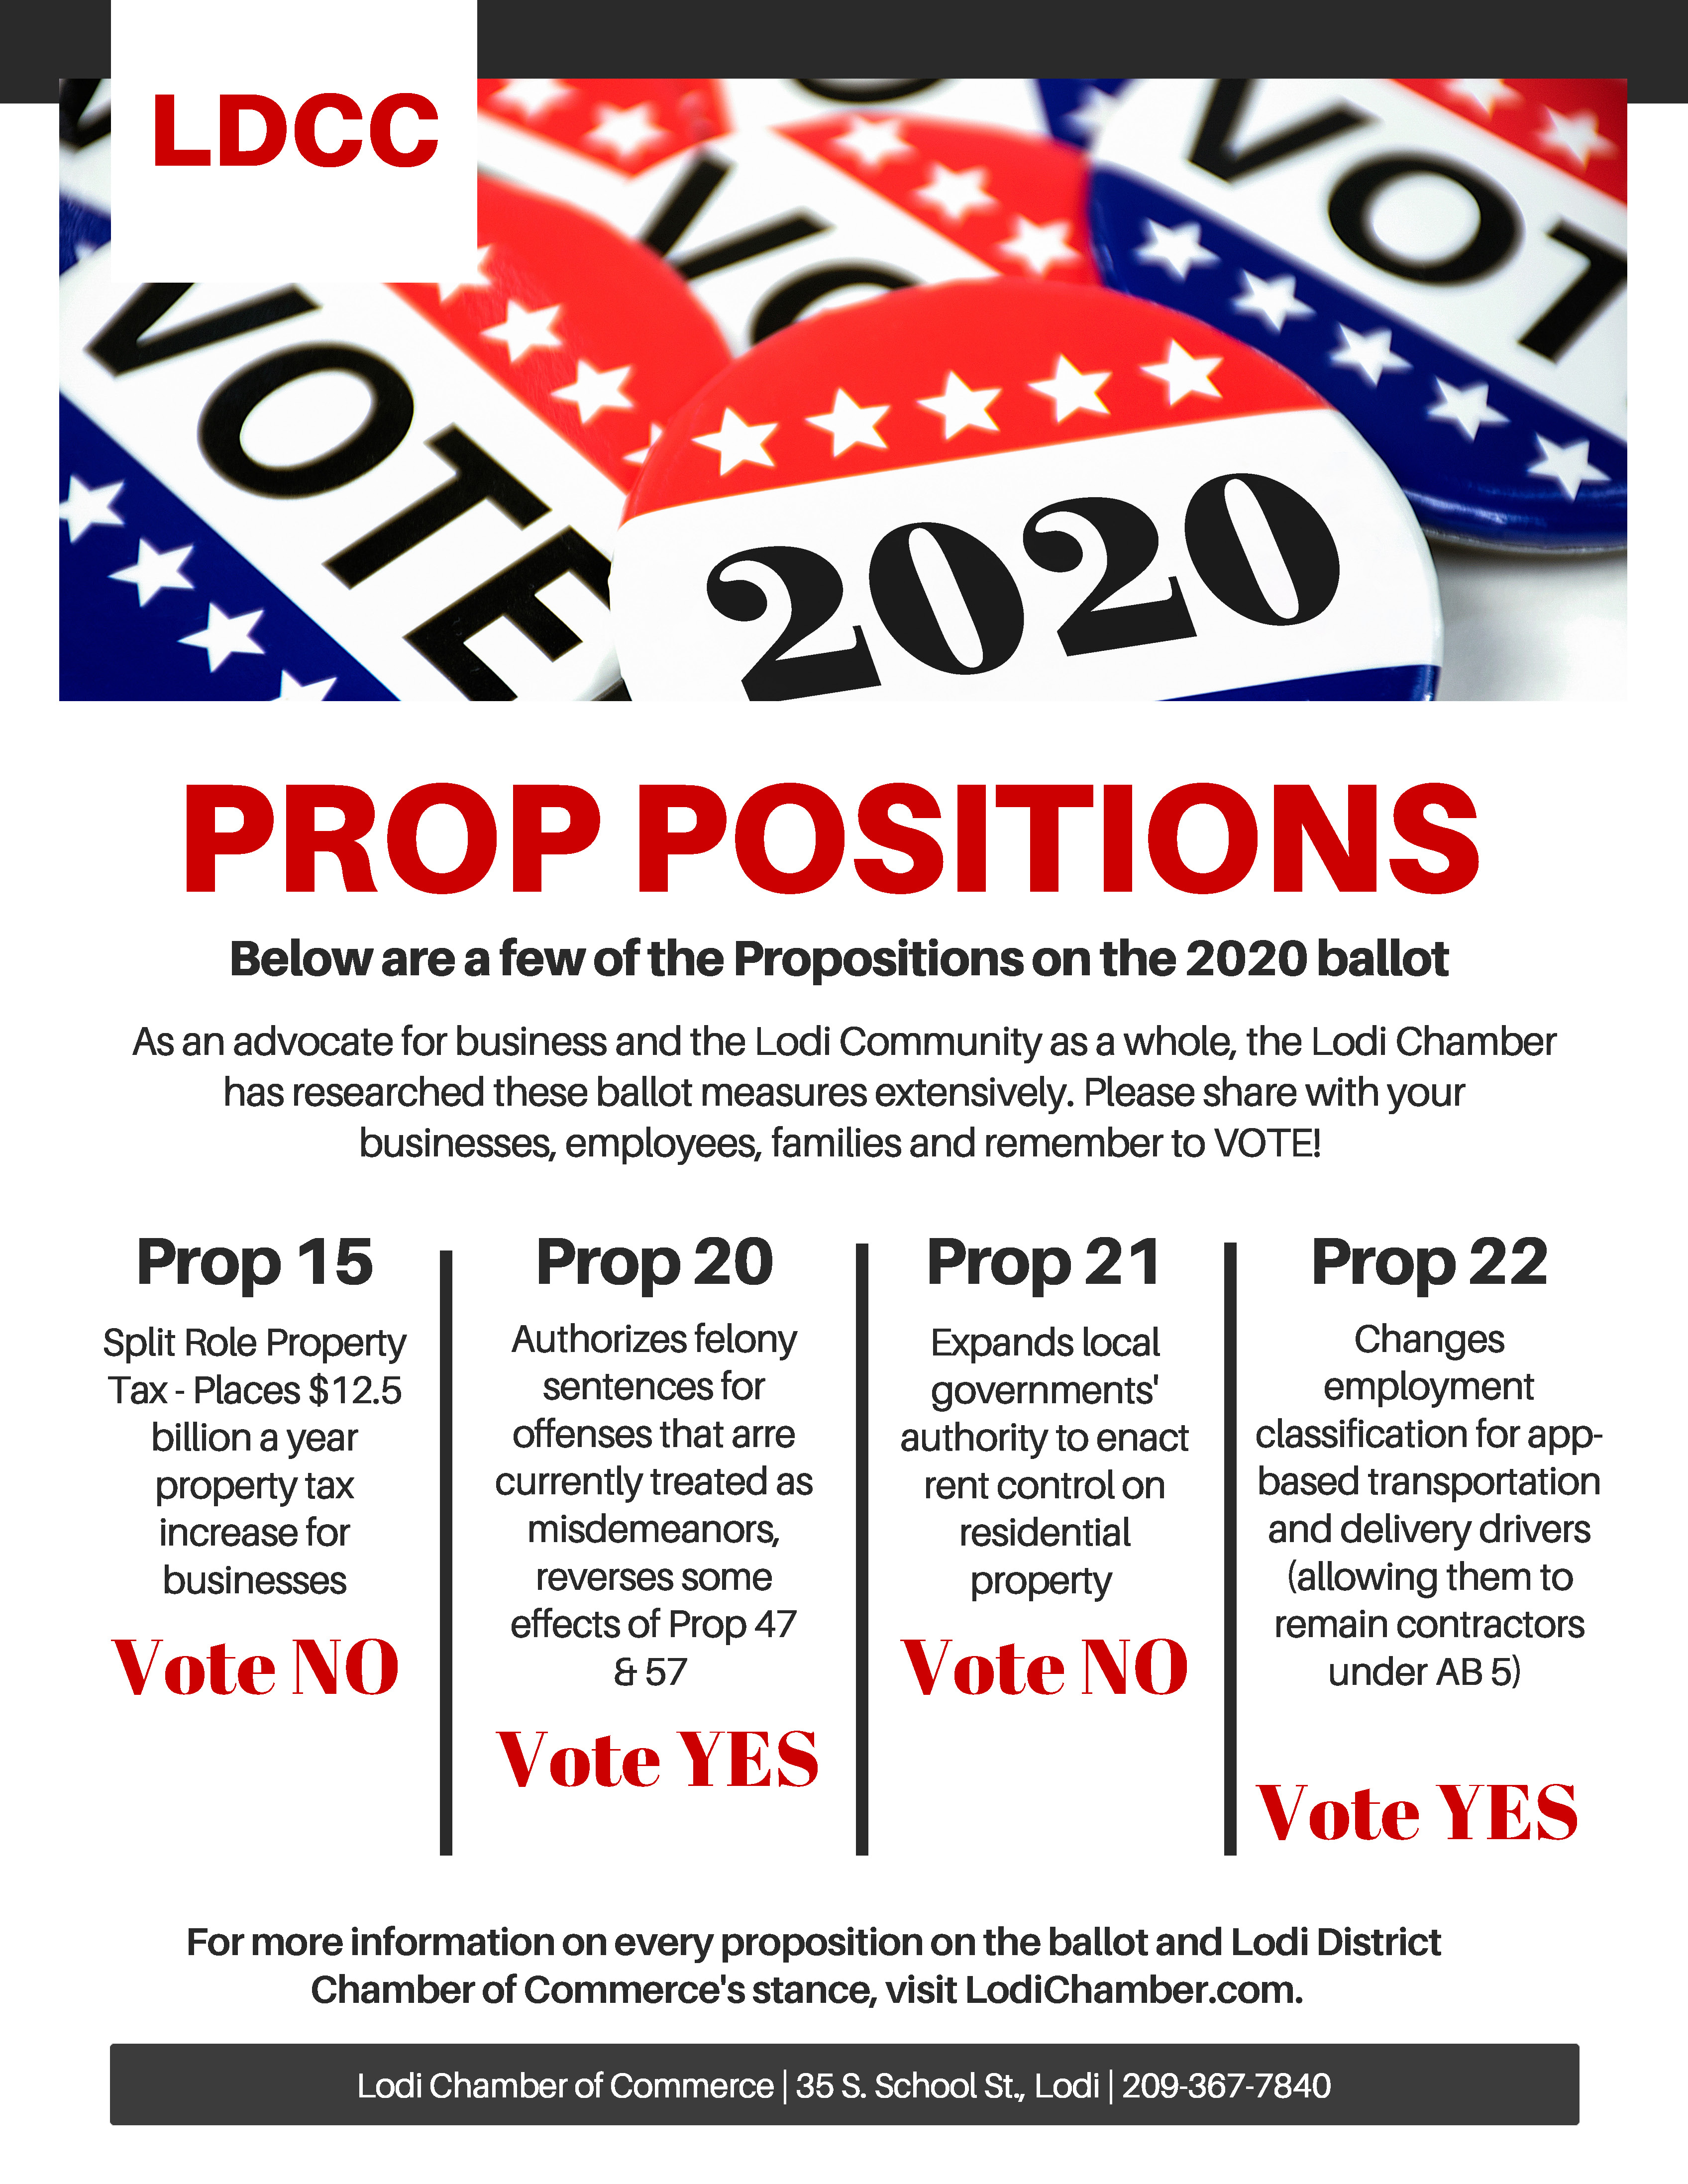 Proposition Positions on 2020 Ballot